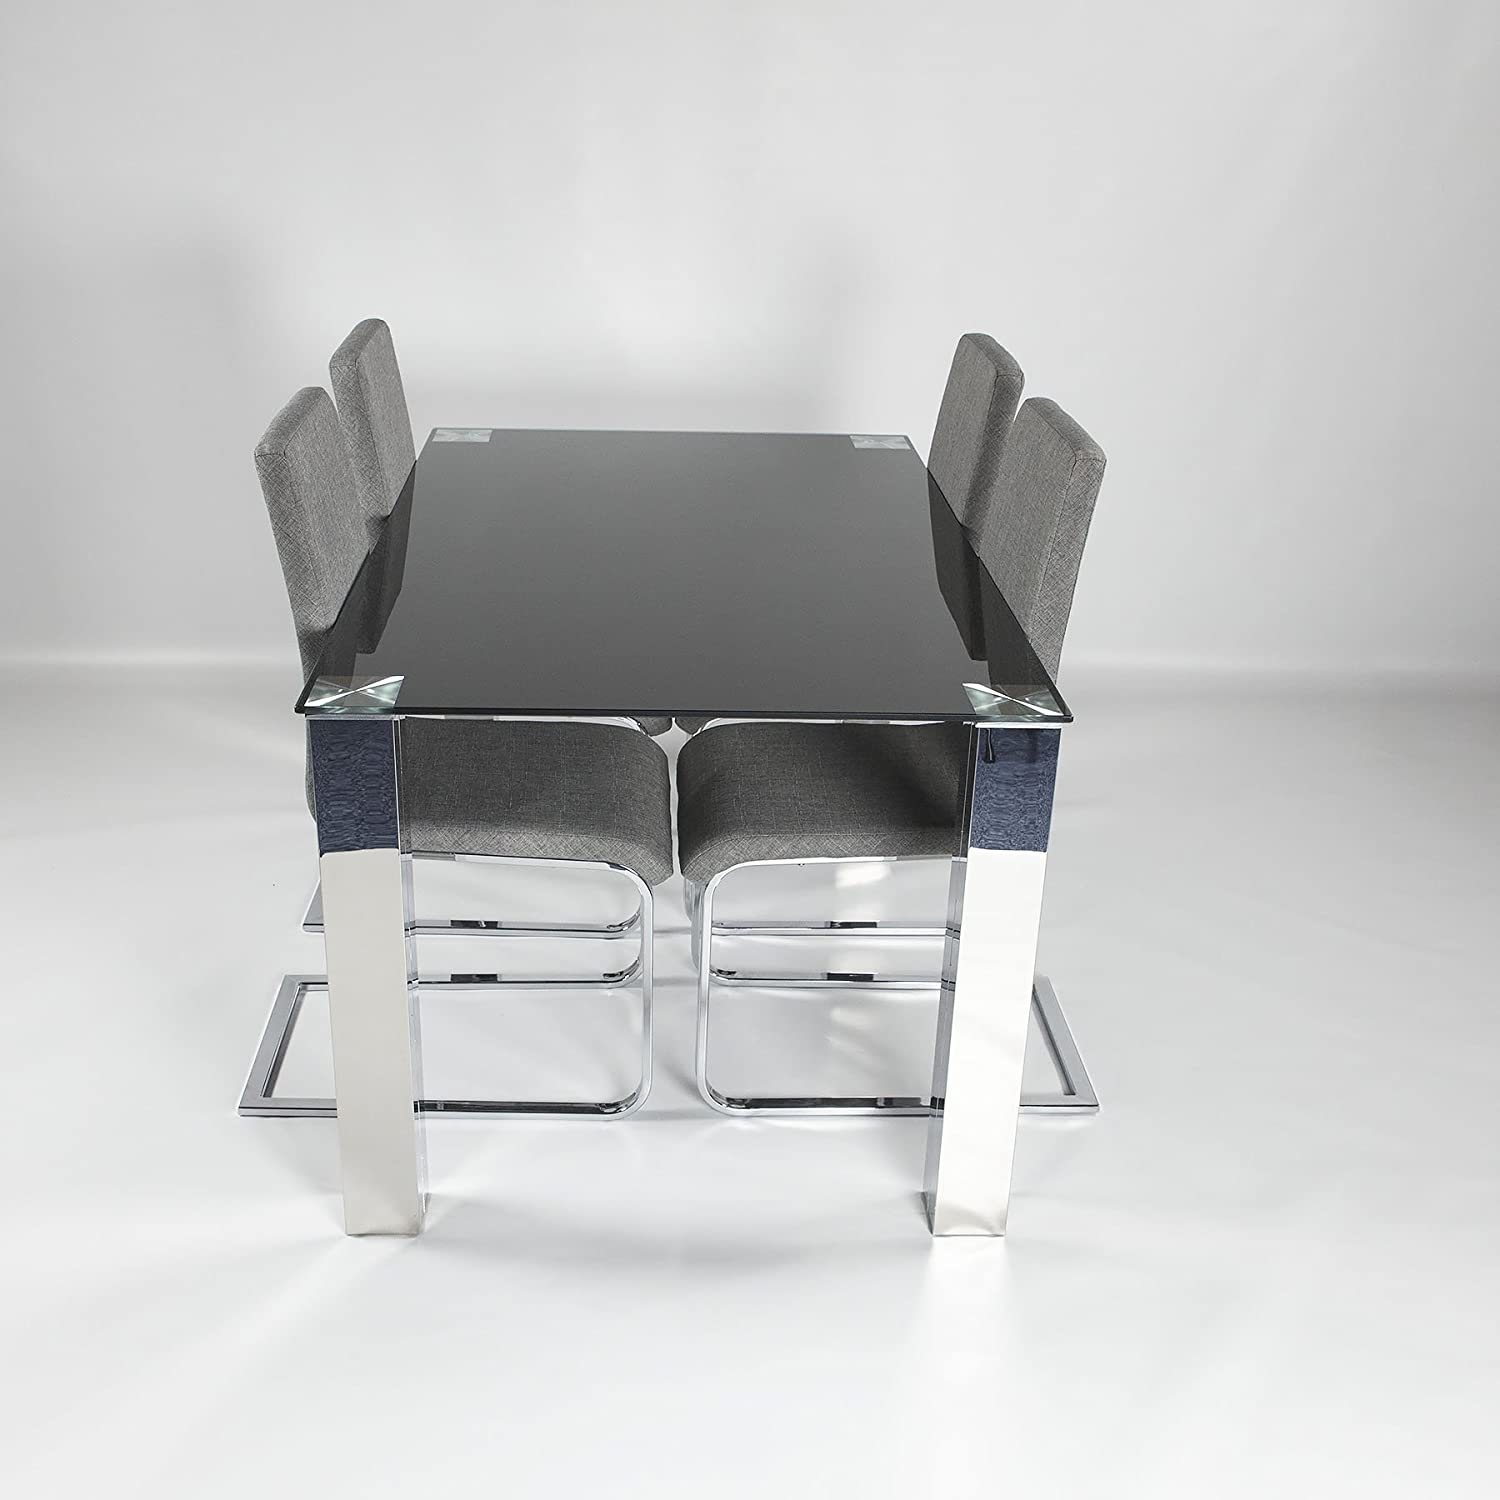 Charles Jacobs Large 6 Person Dining Table with Glass Top and Chrome Legs Choice Of Colours